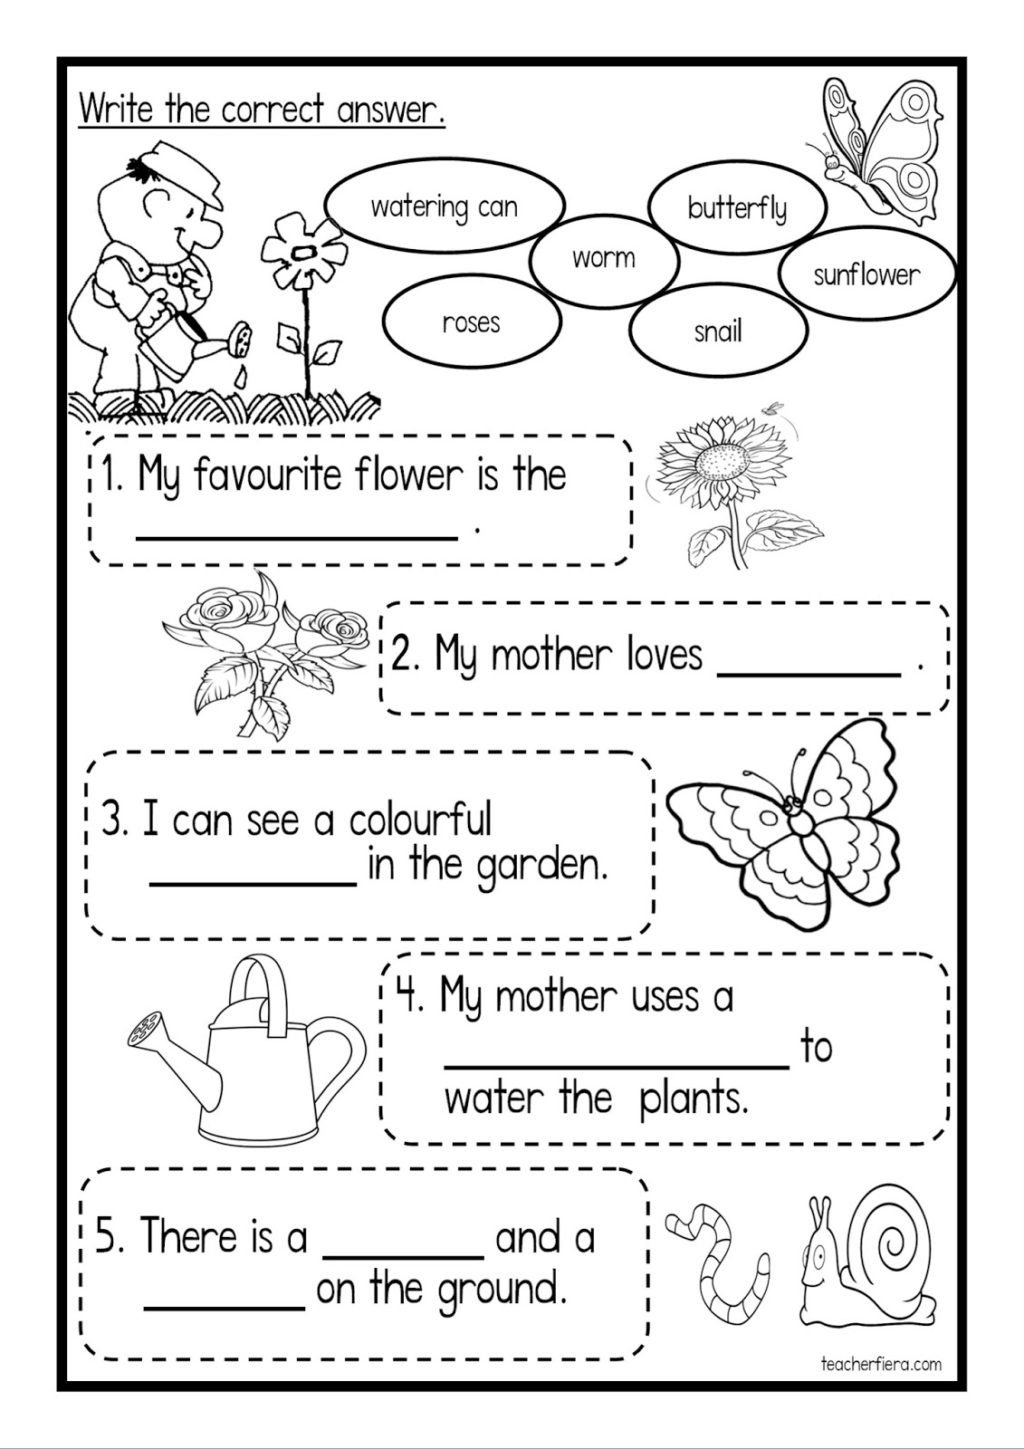 Silent E Worksheets 2nd Grade Worksheet Incredible Fun Math Sheets for 2nd Grade